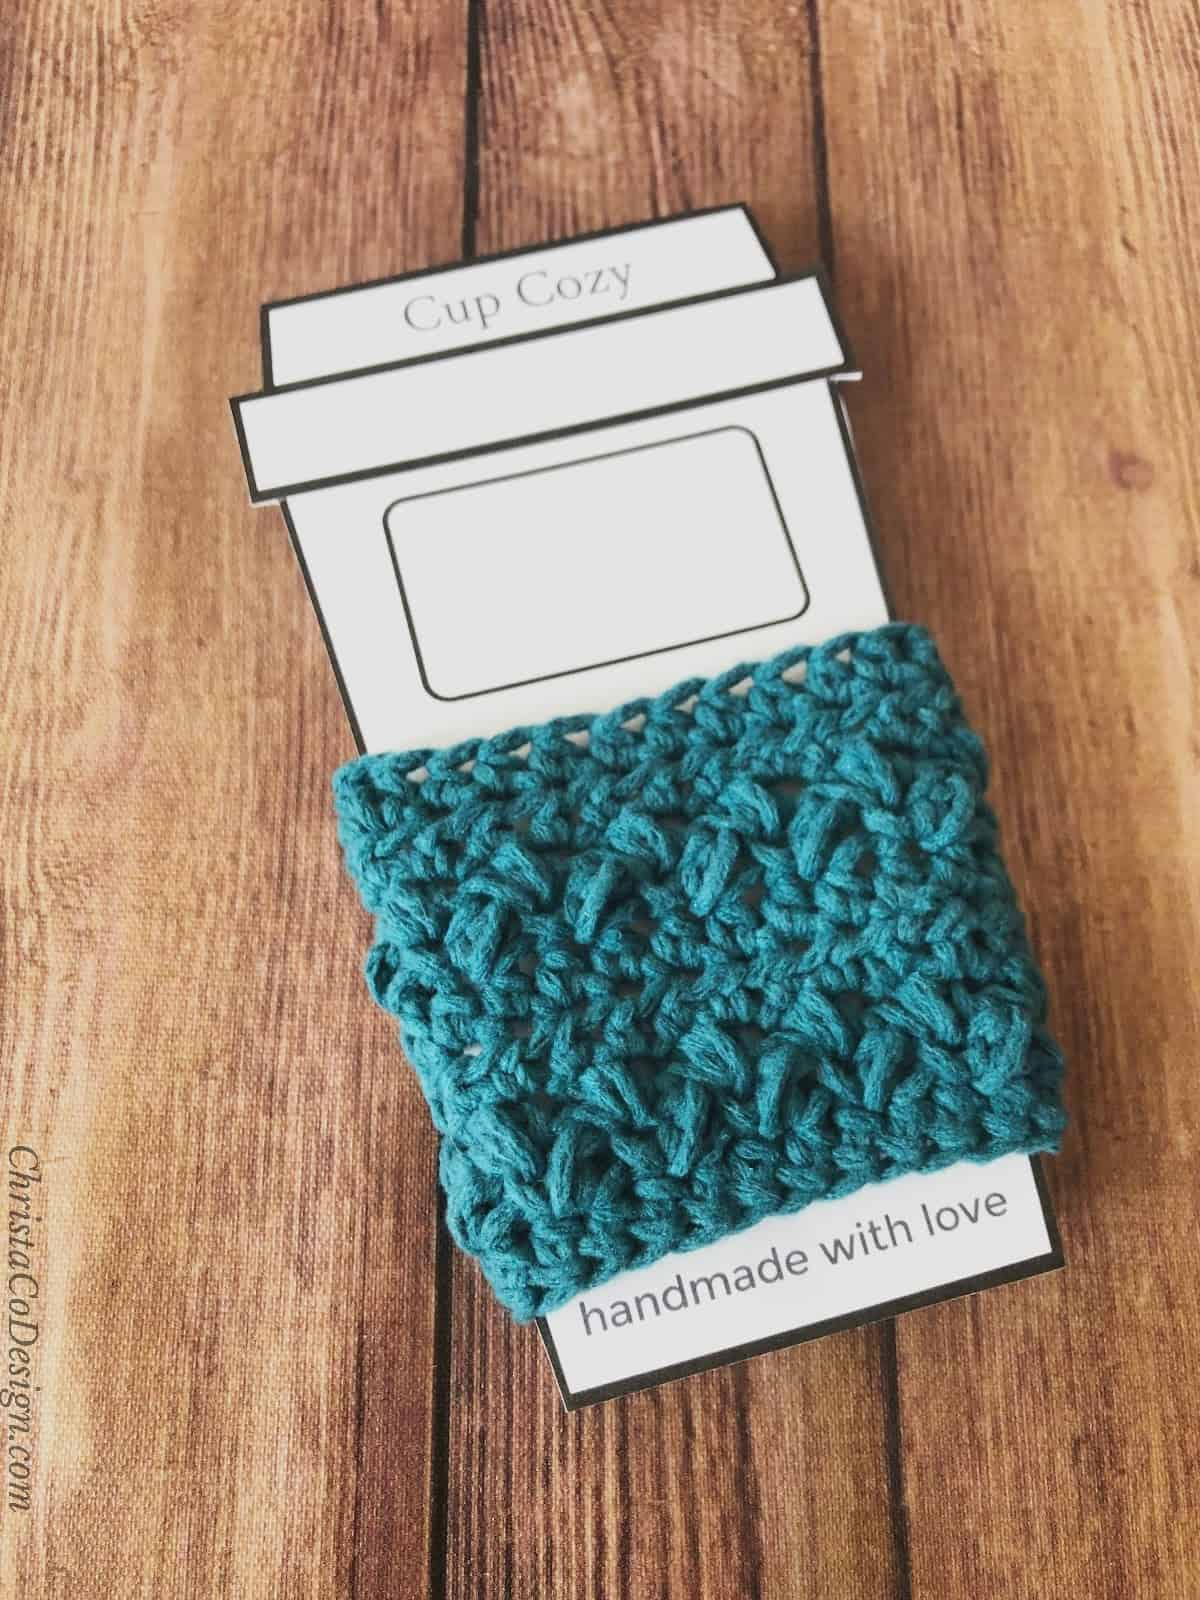 To go sleeve cup cozy in printable template